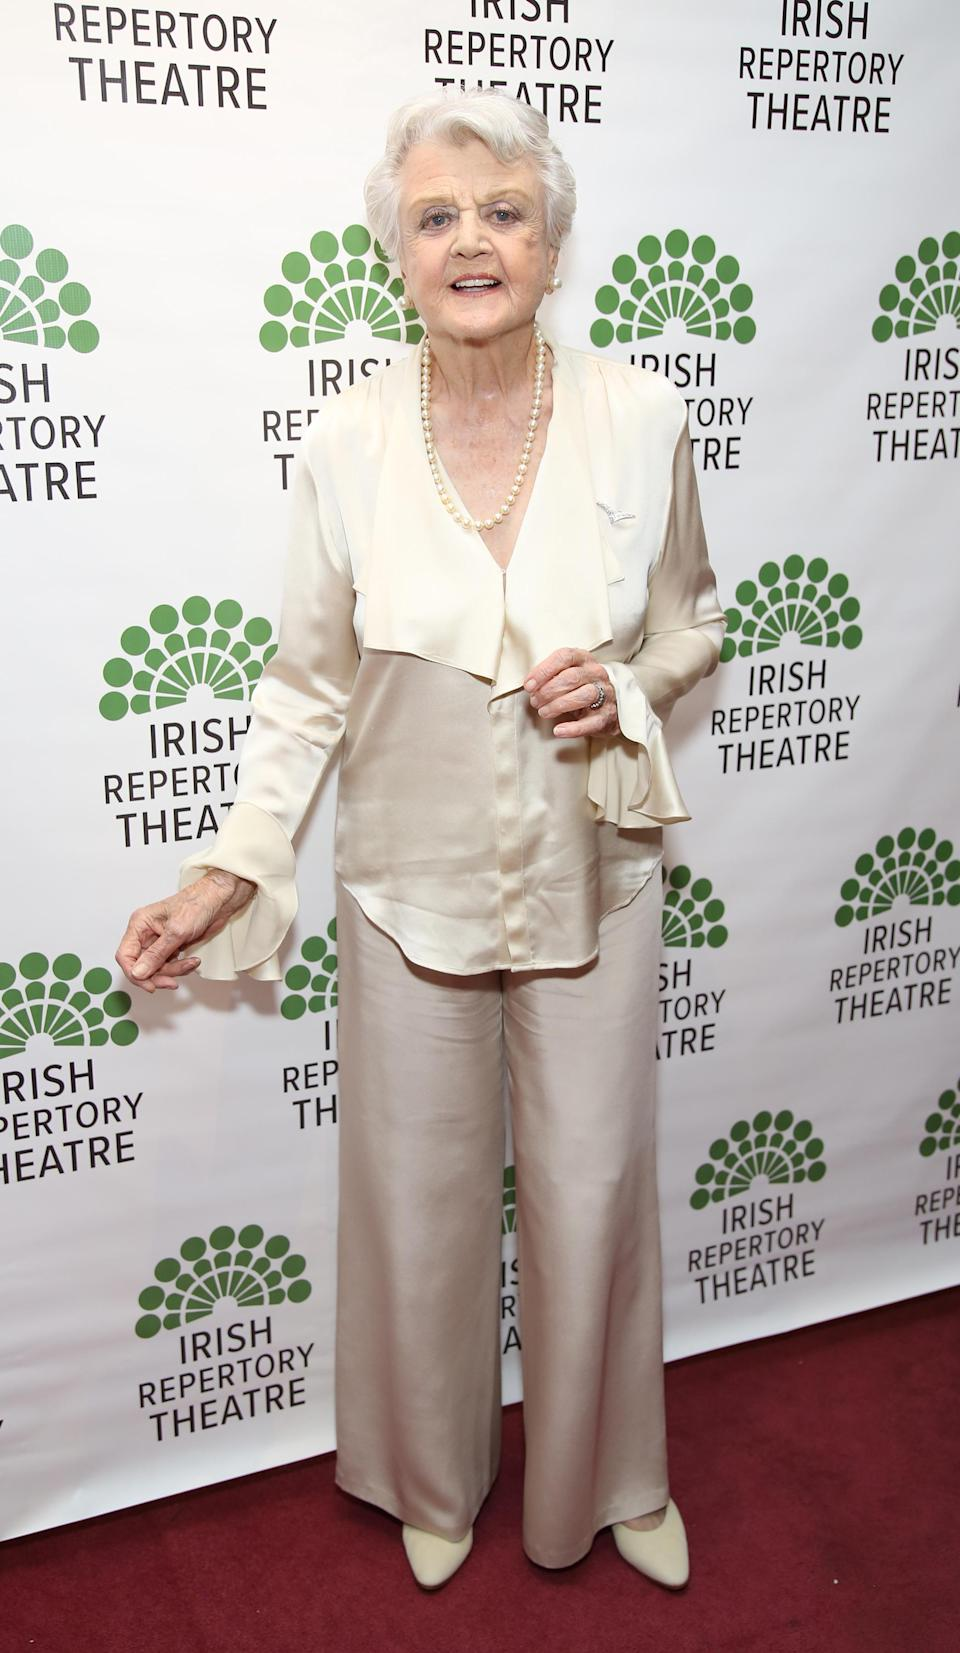 Angela Lansbury is under fire for controversial remarks about female sexual abuse victims. (Photo: Getty Images)